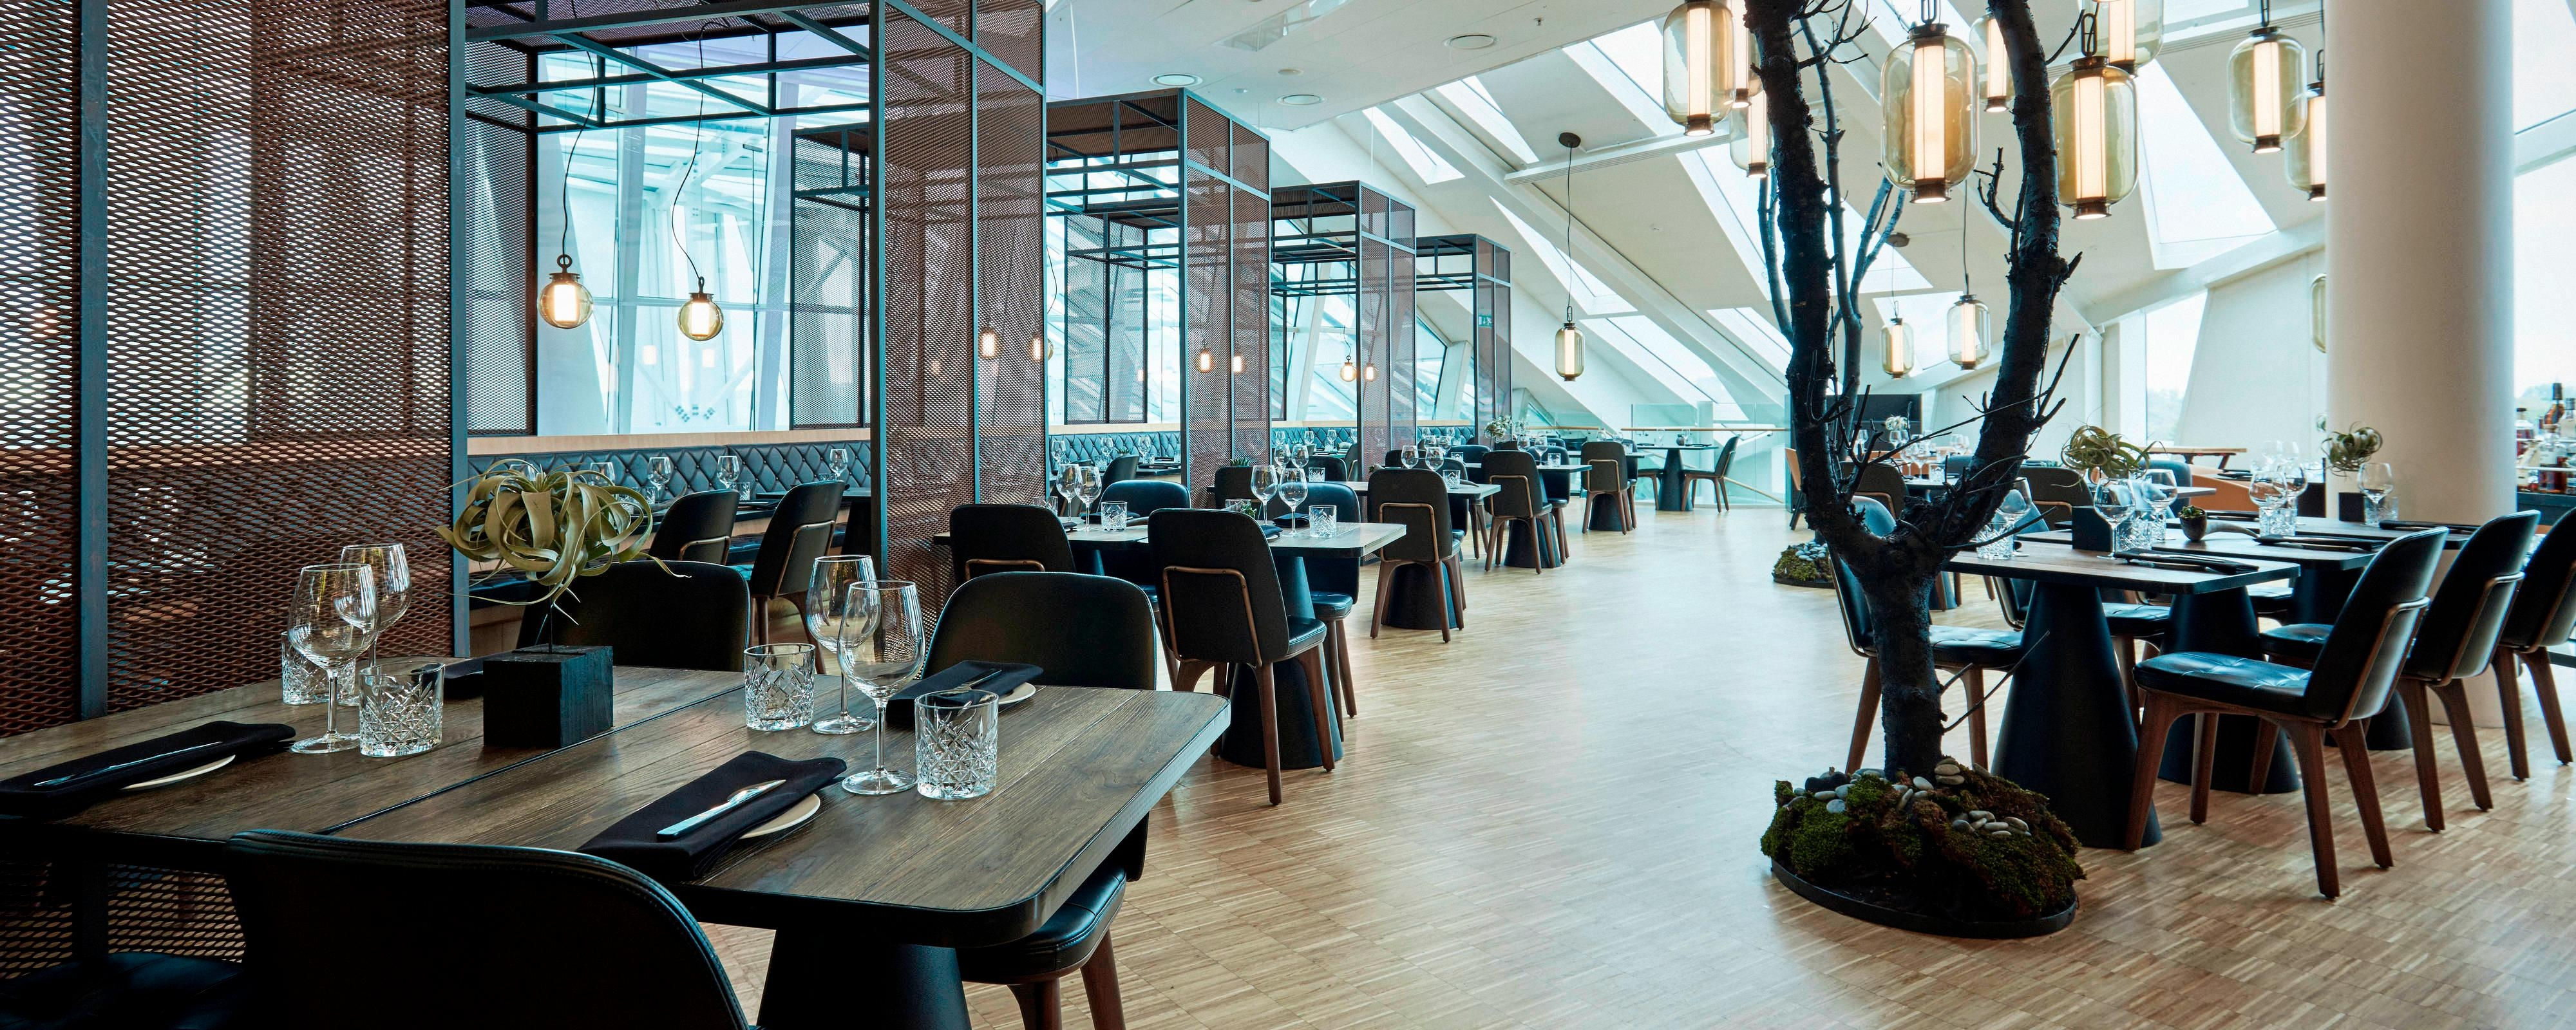 Rooftop bar airport restaurant ac hotel bella sky for Designhotel kopenhagen